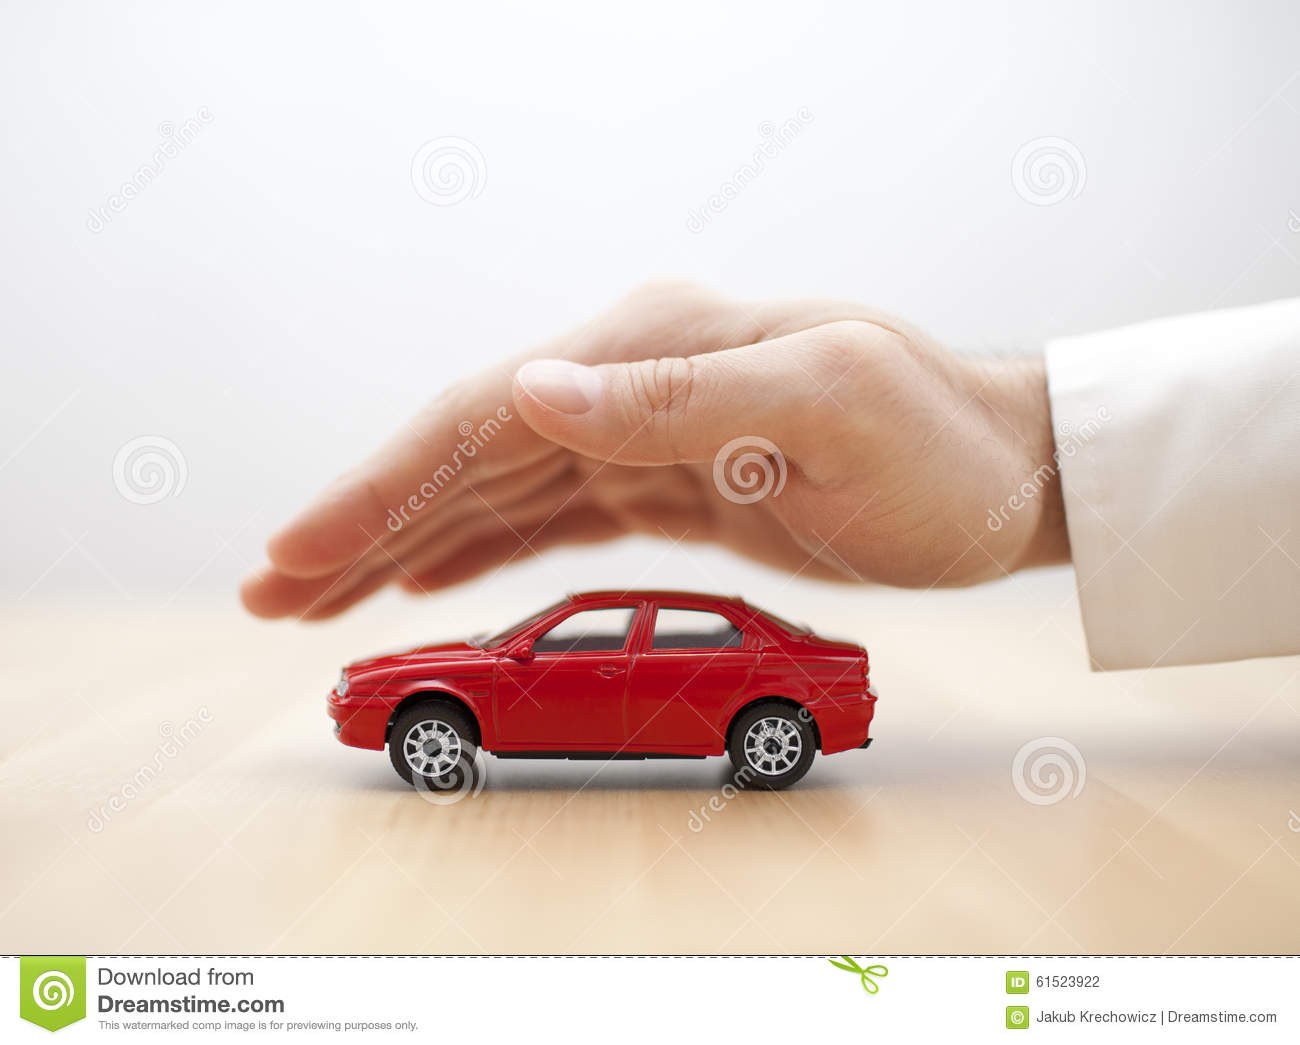 Car Insurance Stock Photo  Image: 61523922